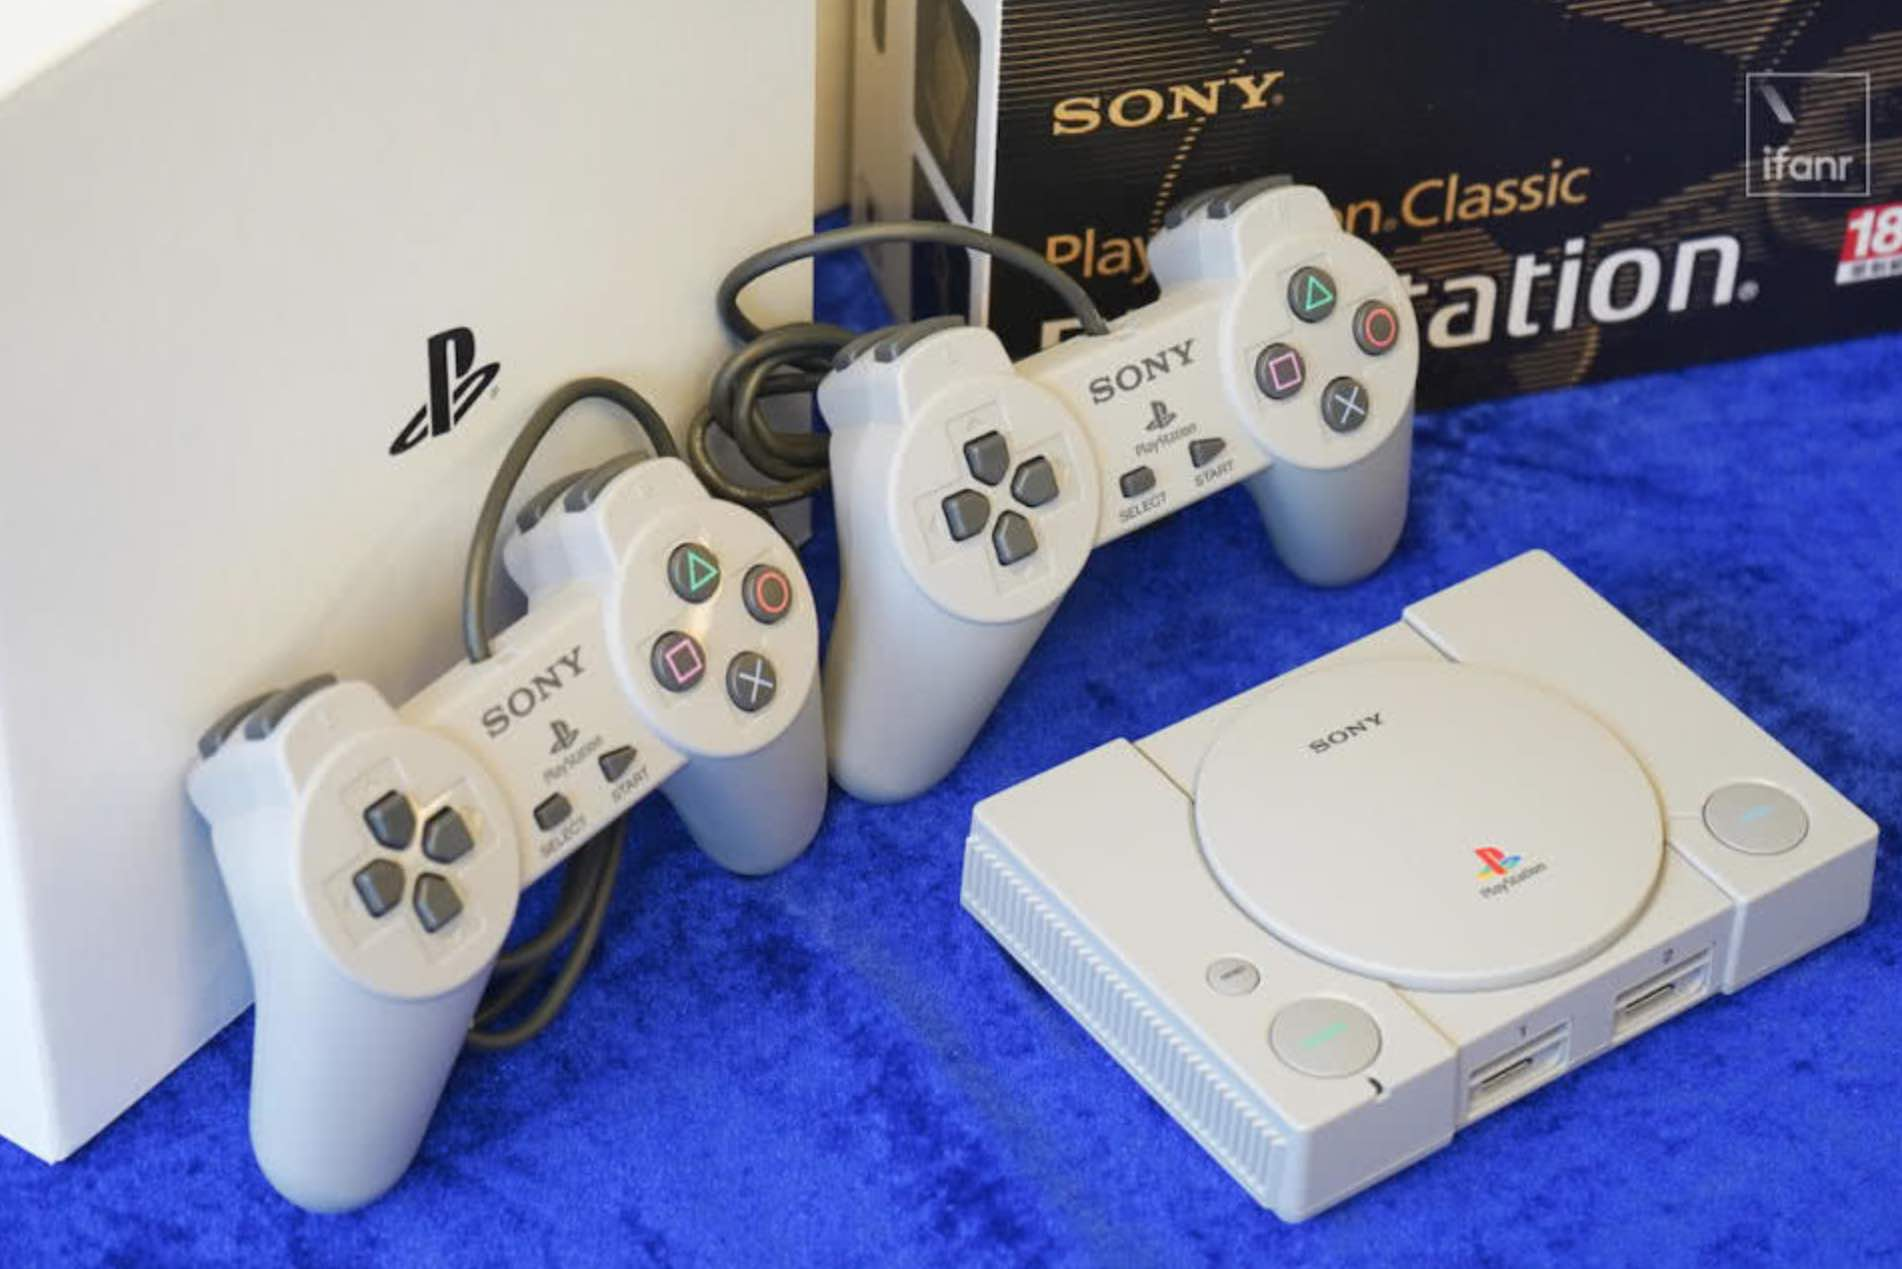 Sony re-enacted the original PlayStation game console: full of emotions